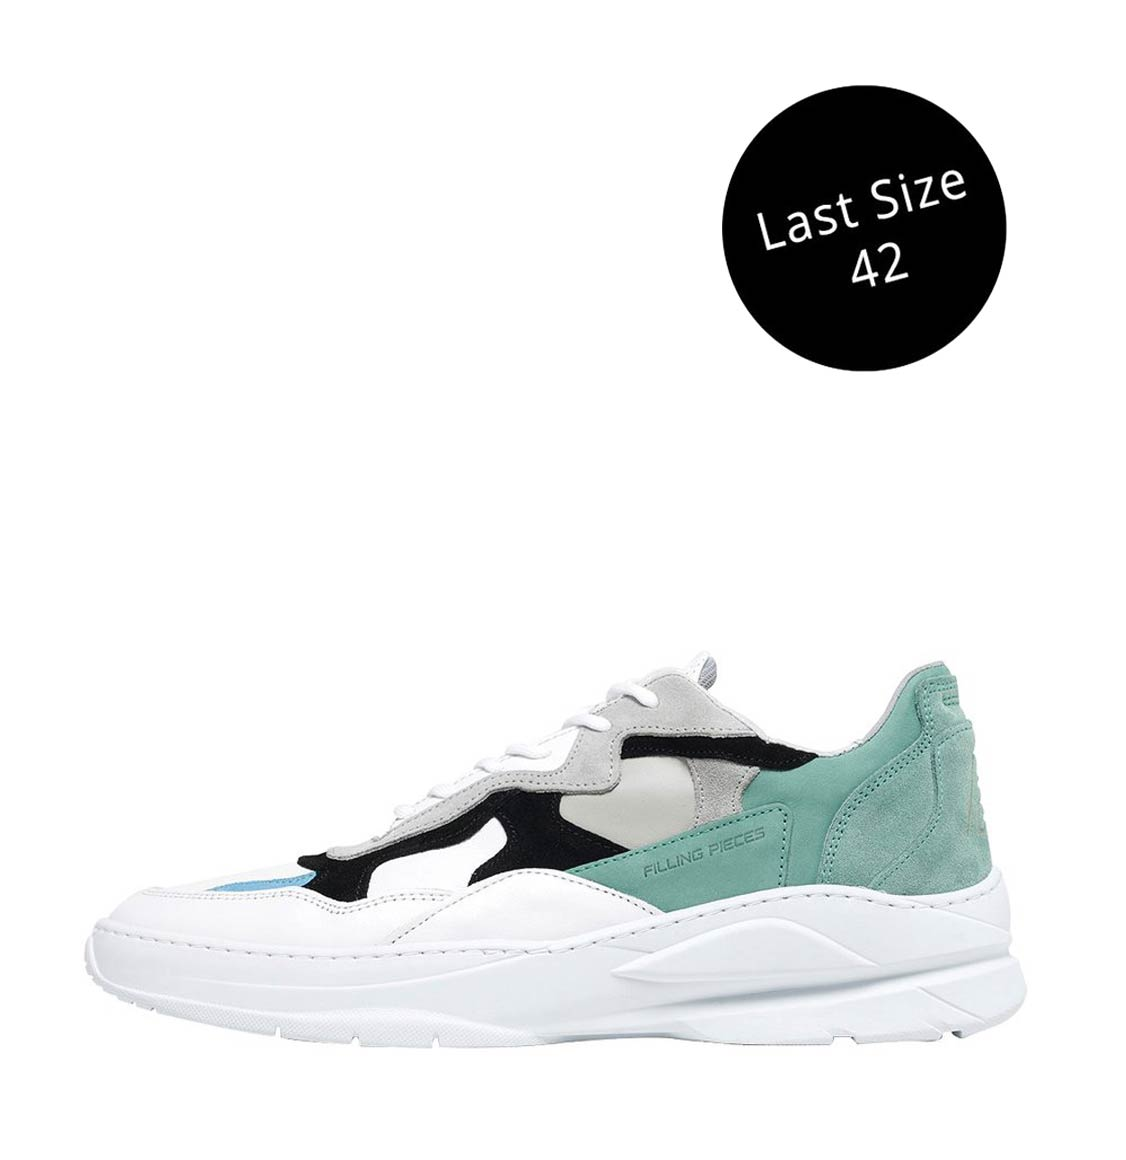 Filling Pieces Low Fade Cosmo Infinity Mint Last Size 42